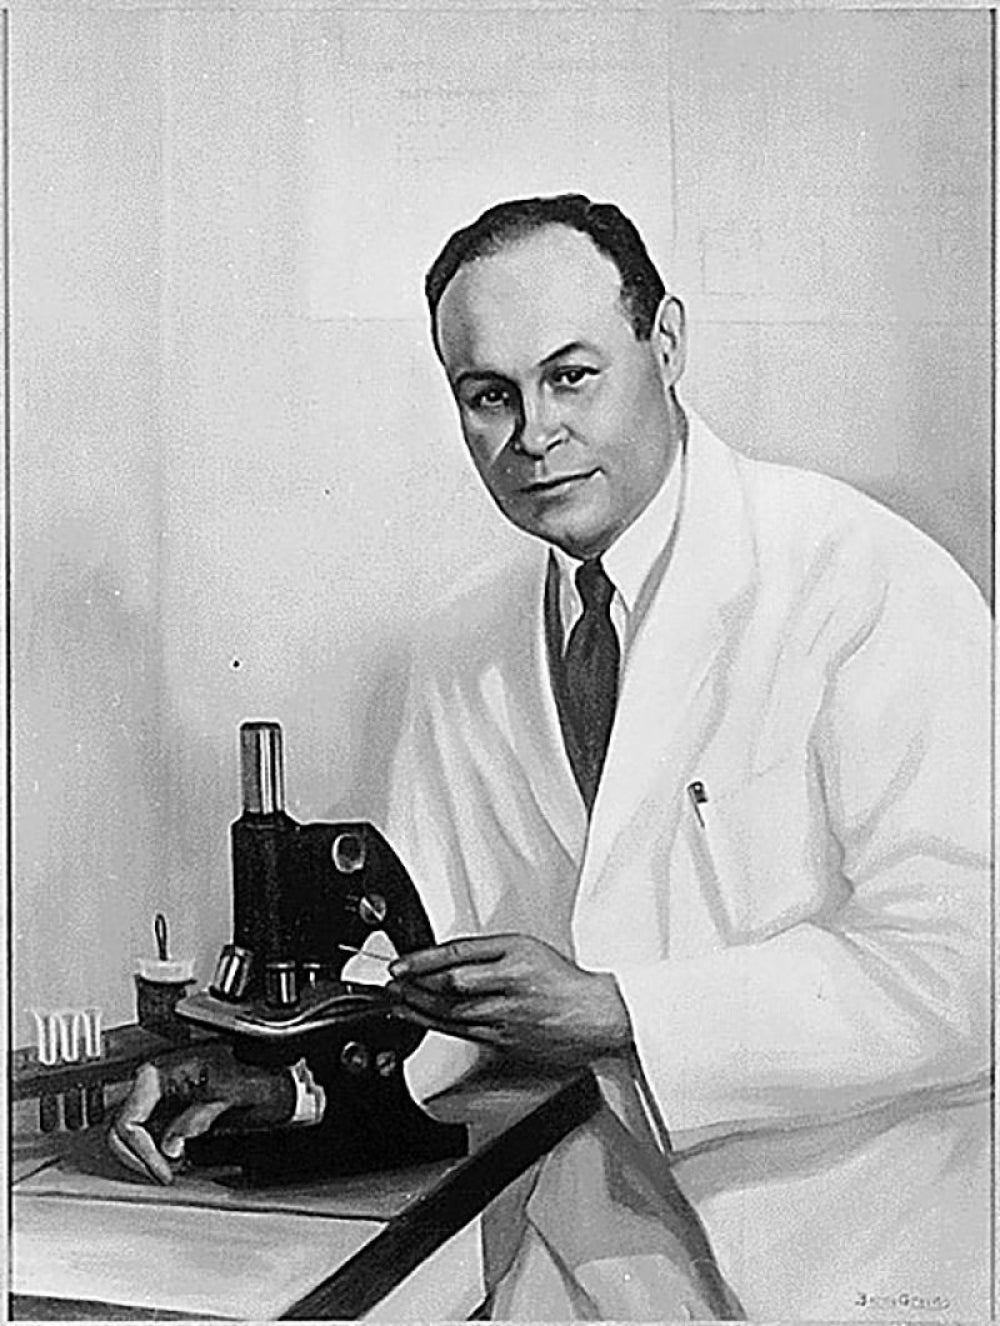 Charles Drew, inventor of the blood bank